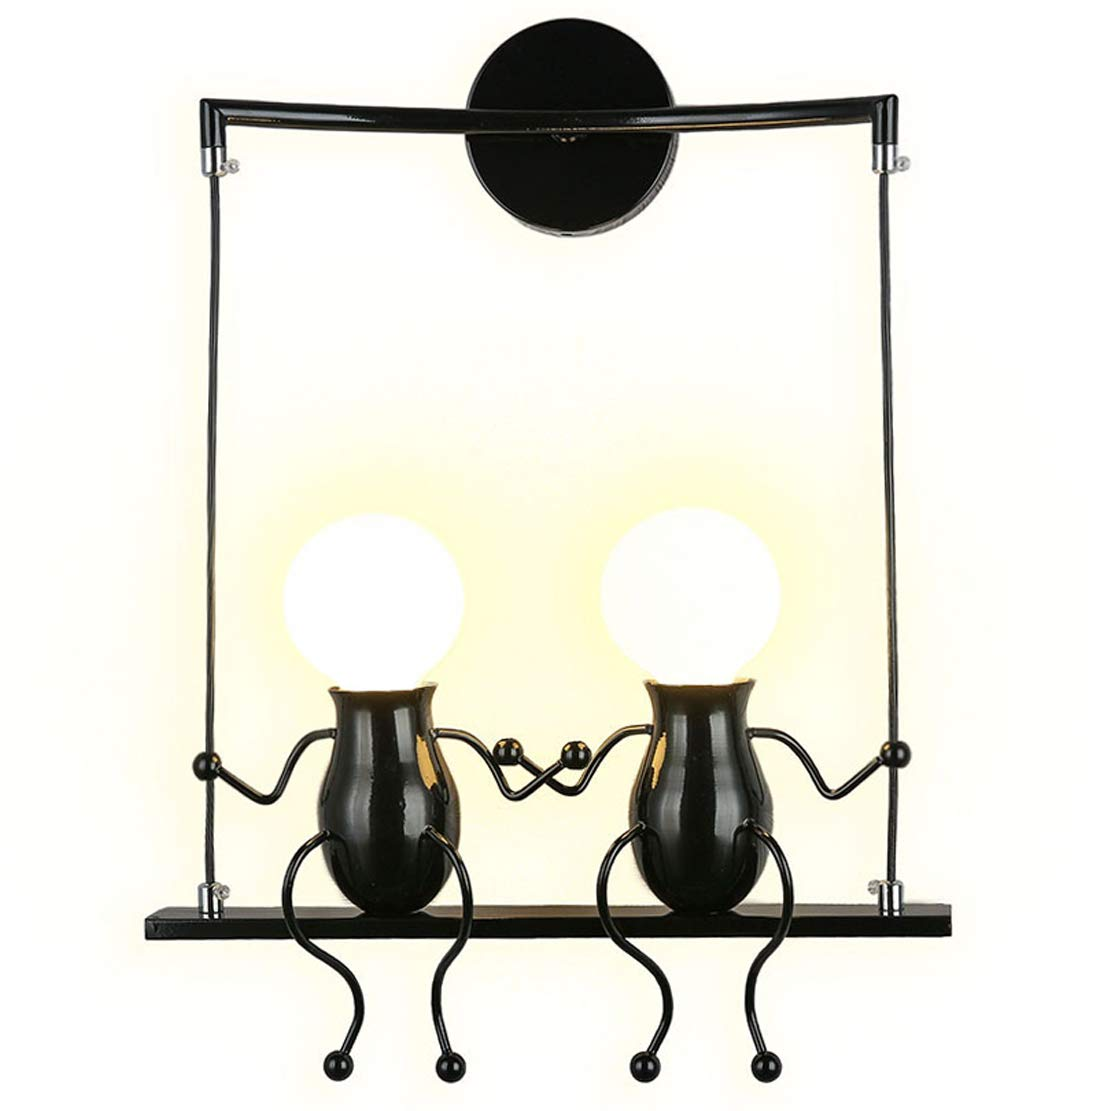 SOUTHPO LED Wall Light Fixtures Creative Double Little People Mini Wall Sconces Lighting Modern Decor Adjustable Swing Metal Bedside Lamp Children Cartoon Doll Gift Wall Lamps Bedroom 2×E26 (Black)